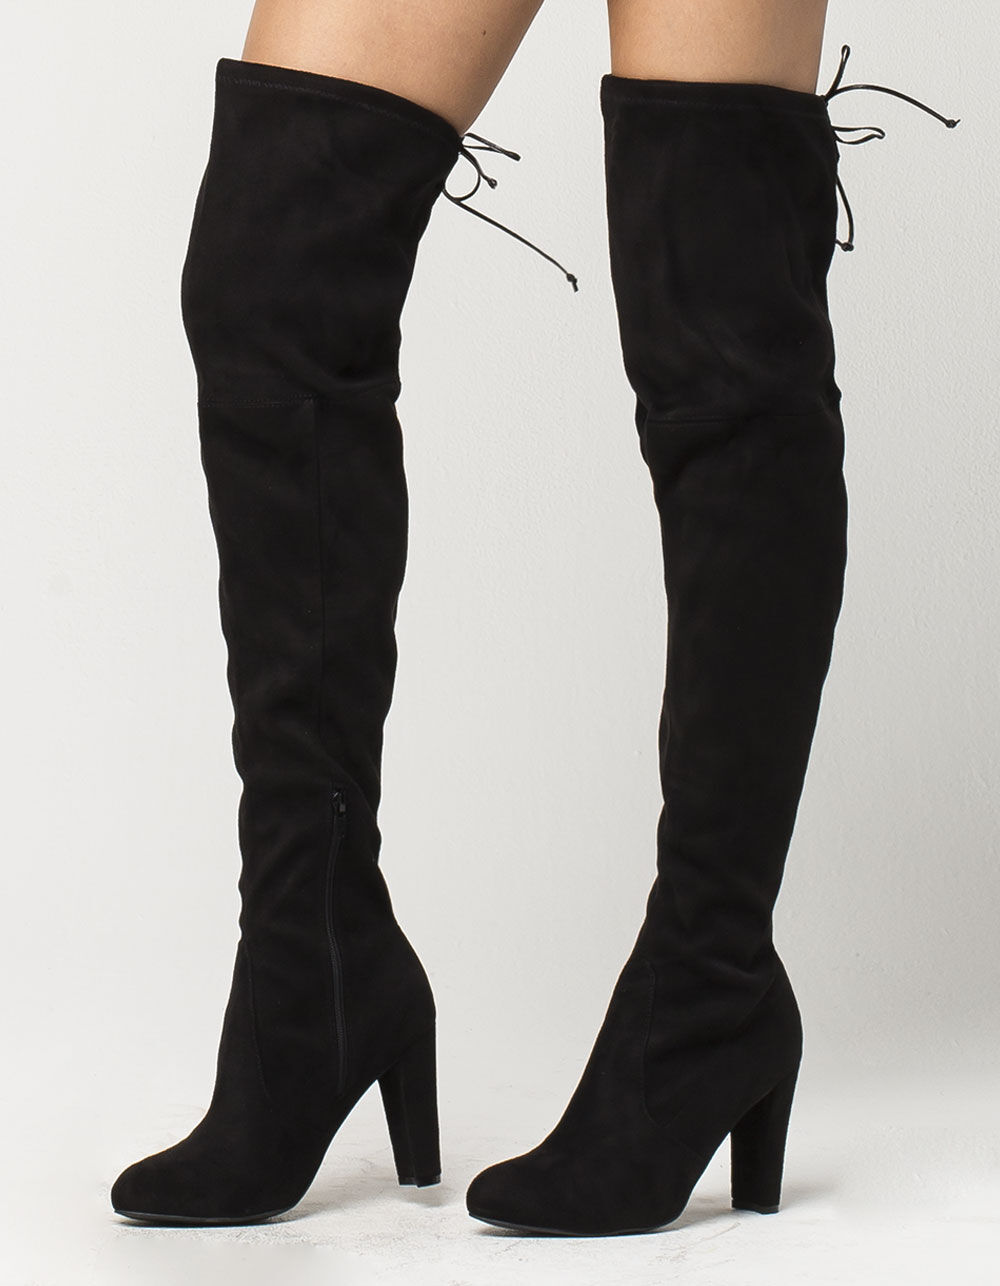 WILD DIVA Over The Knee Heeled Boots